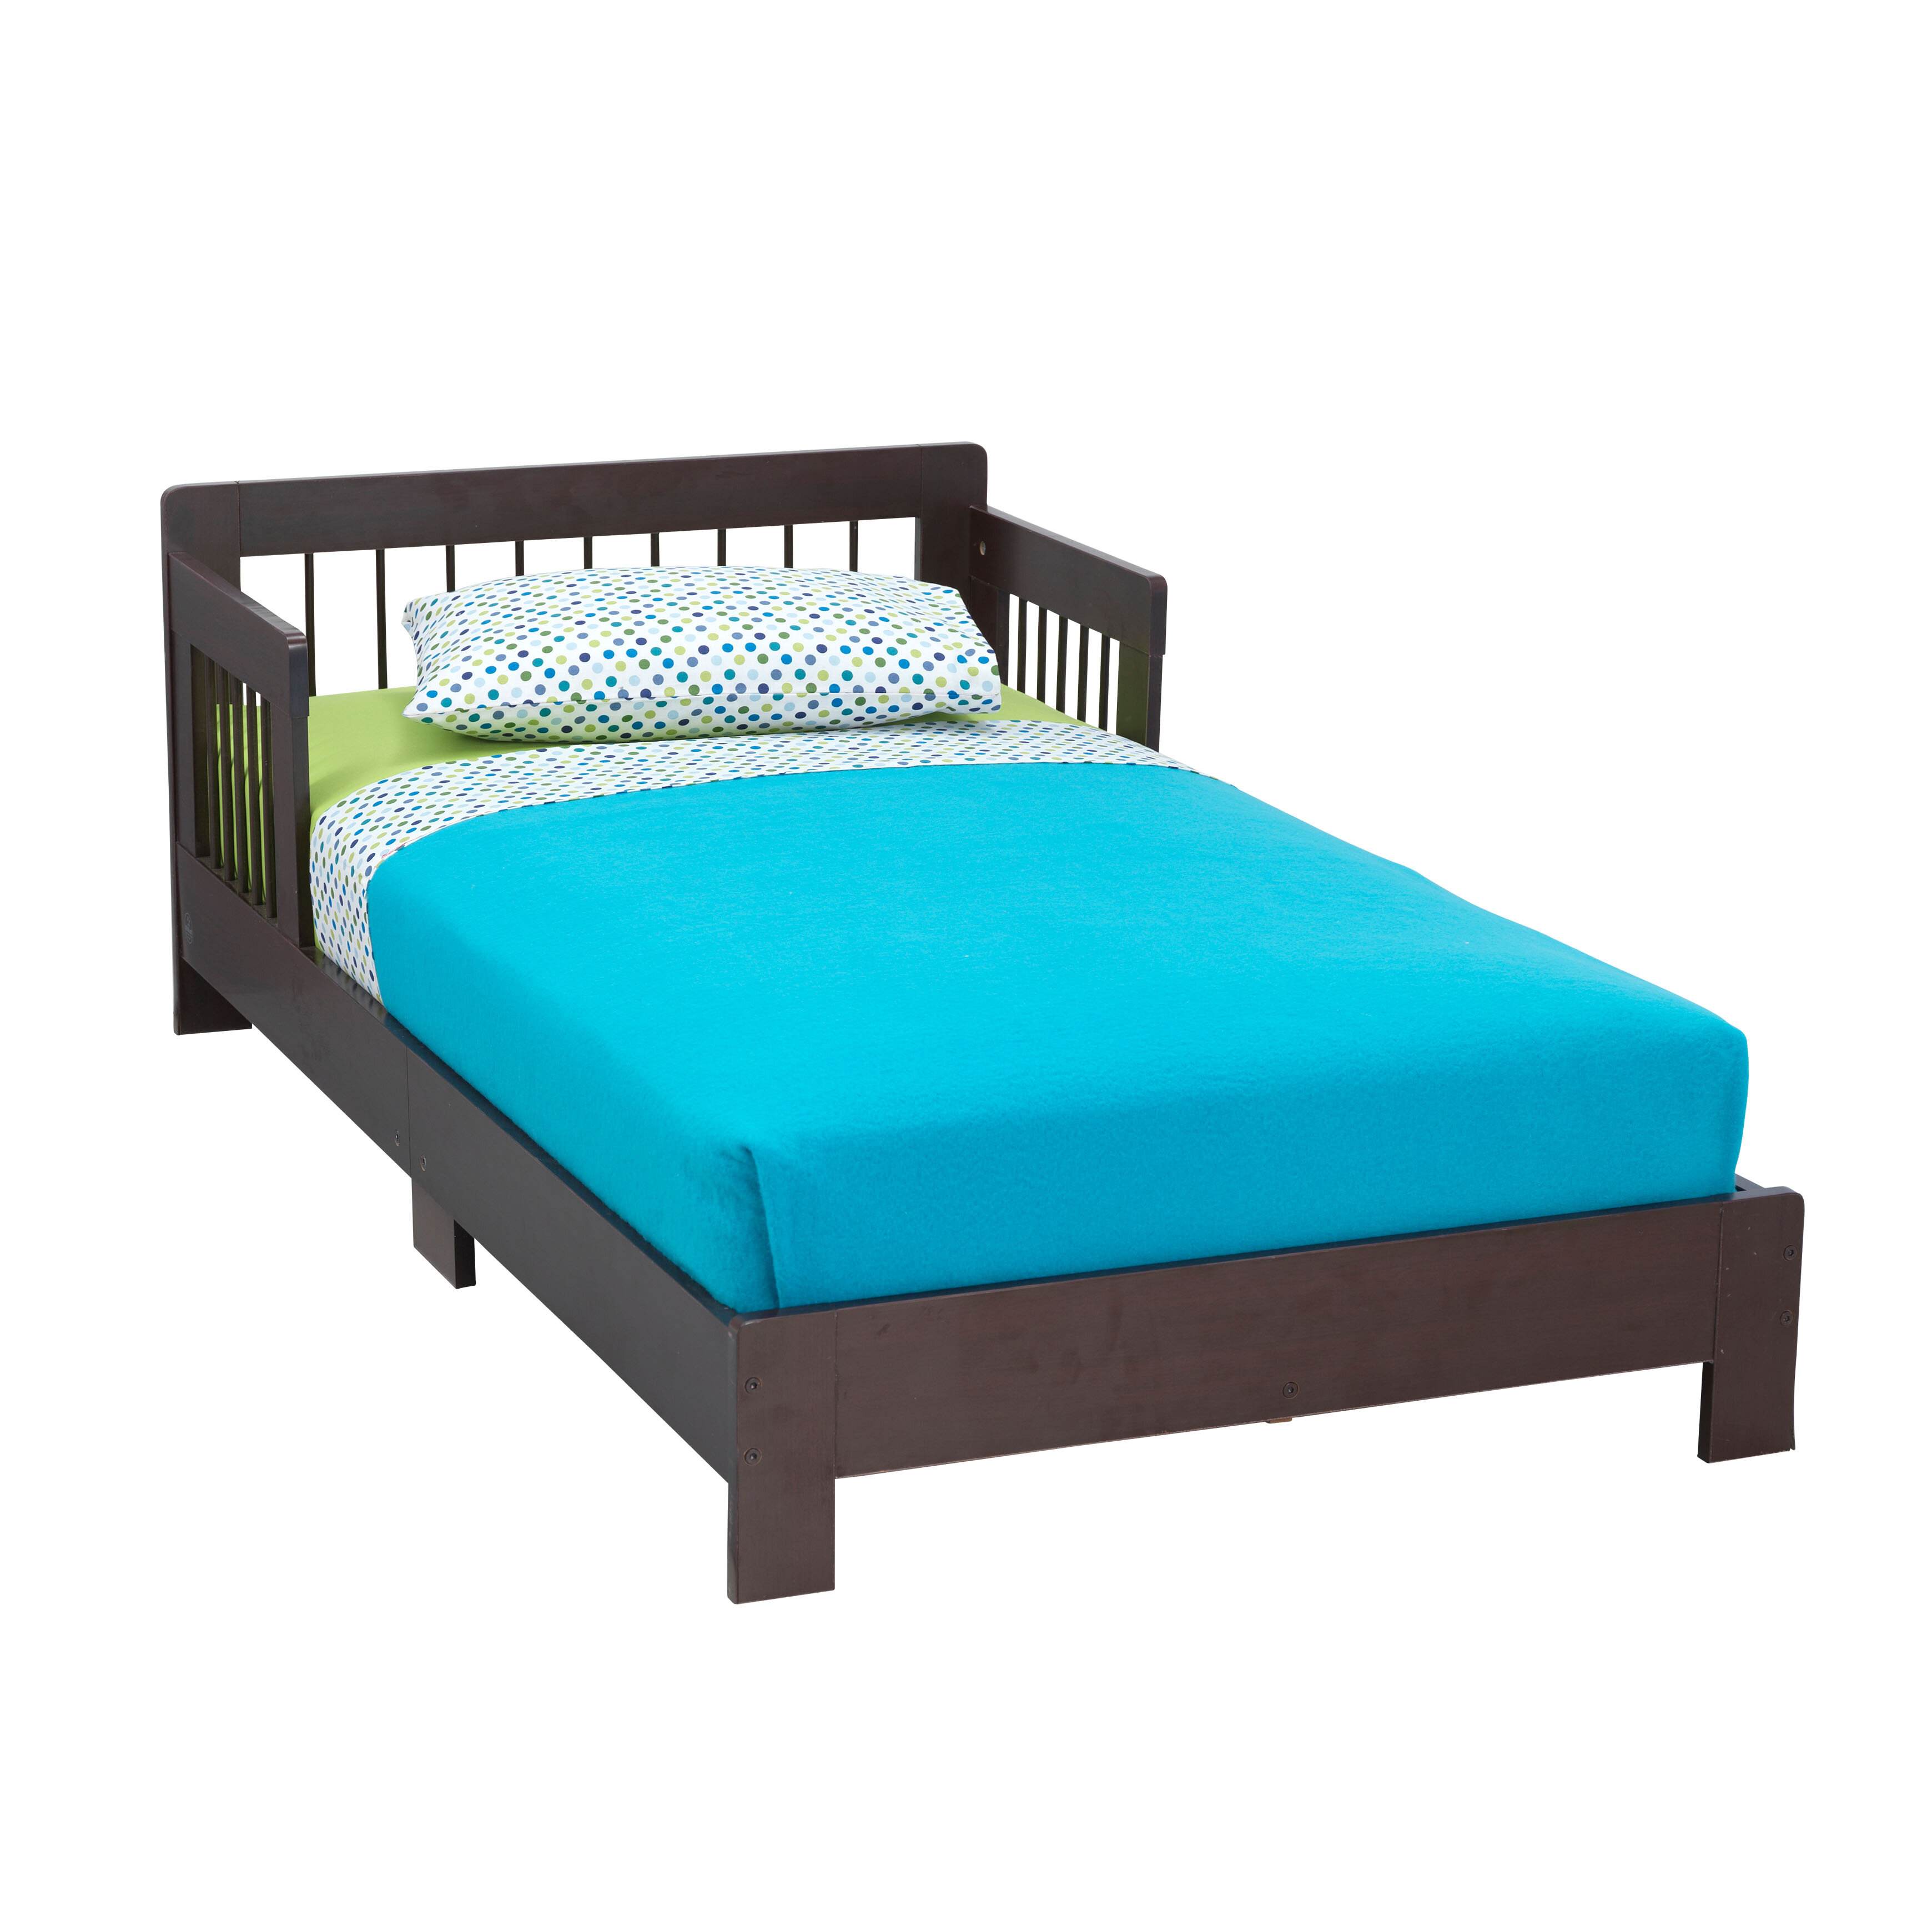 and gruffalo options ebay shelf of p mattress toddler with underbed beds bed picture the storage